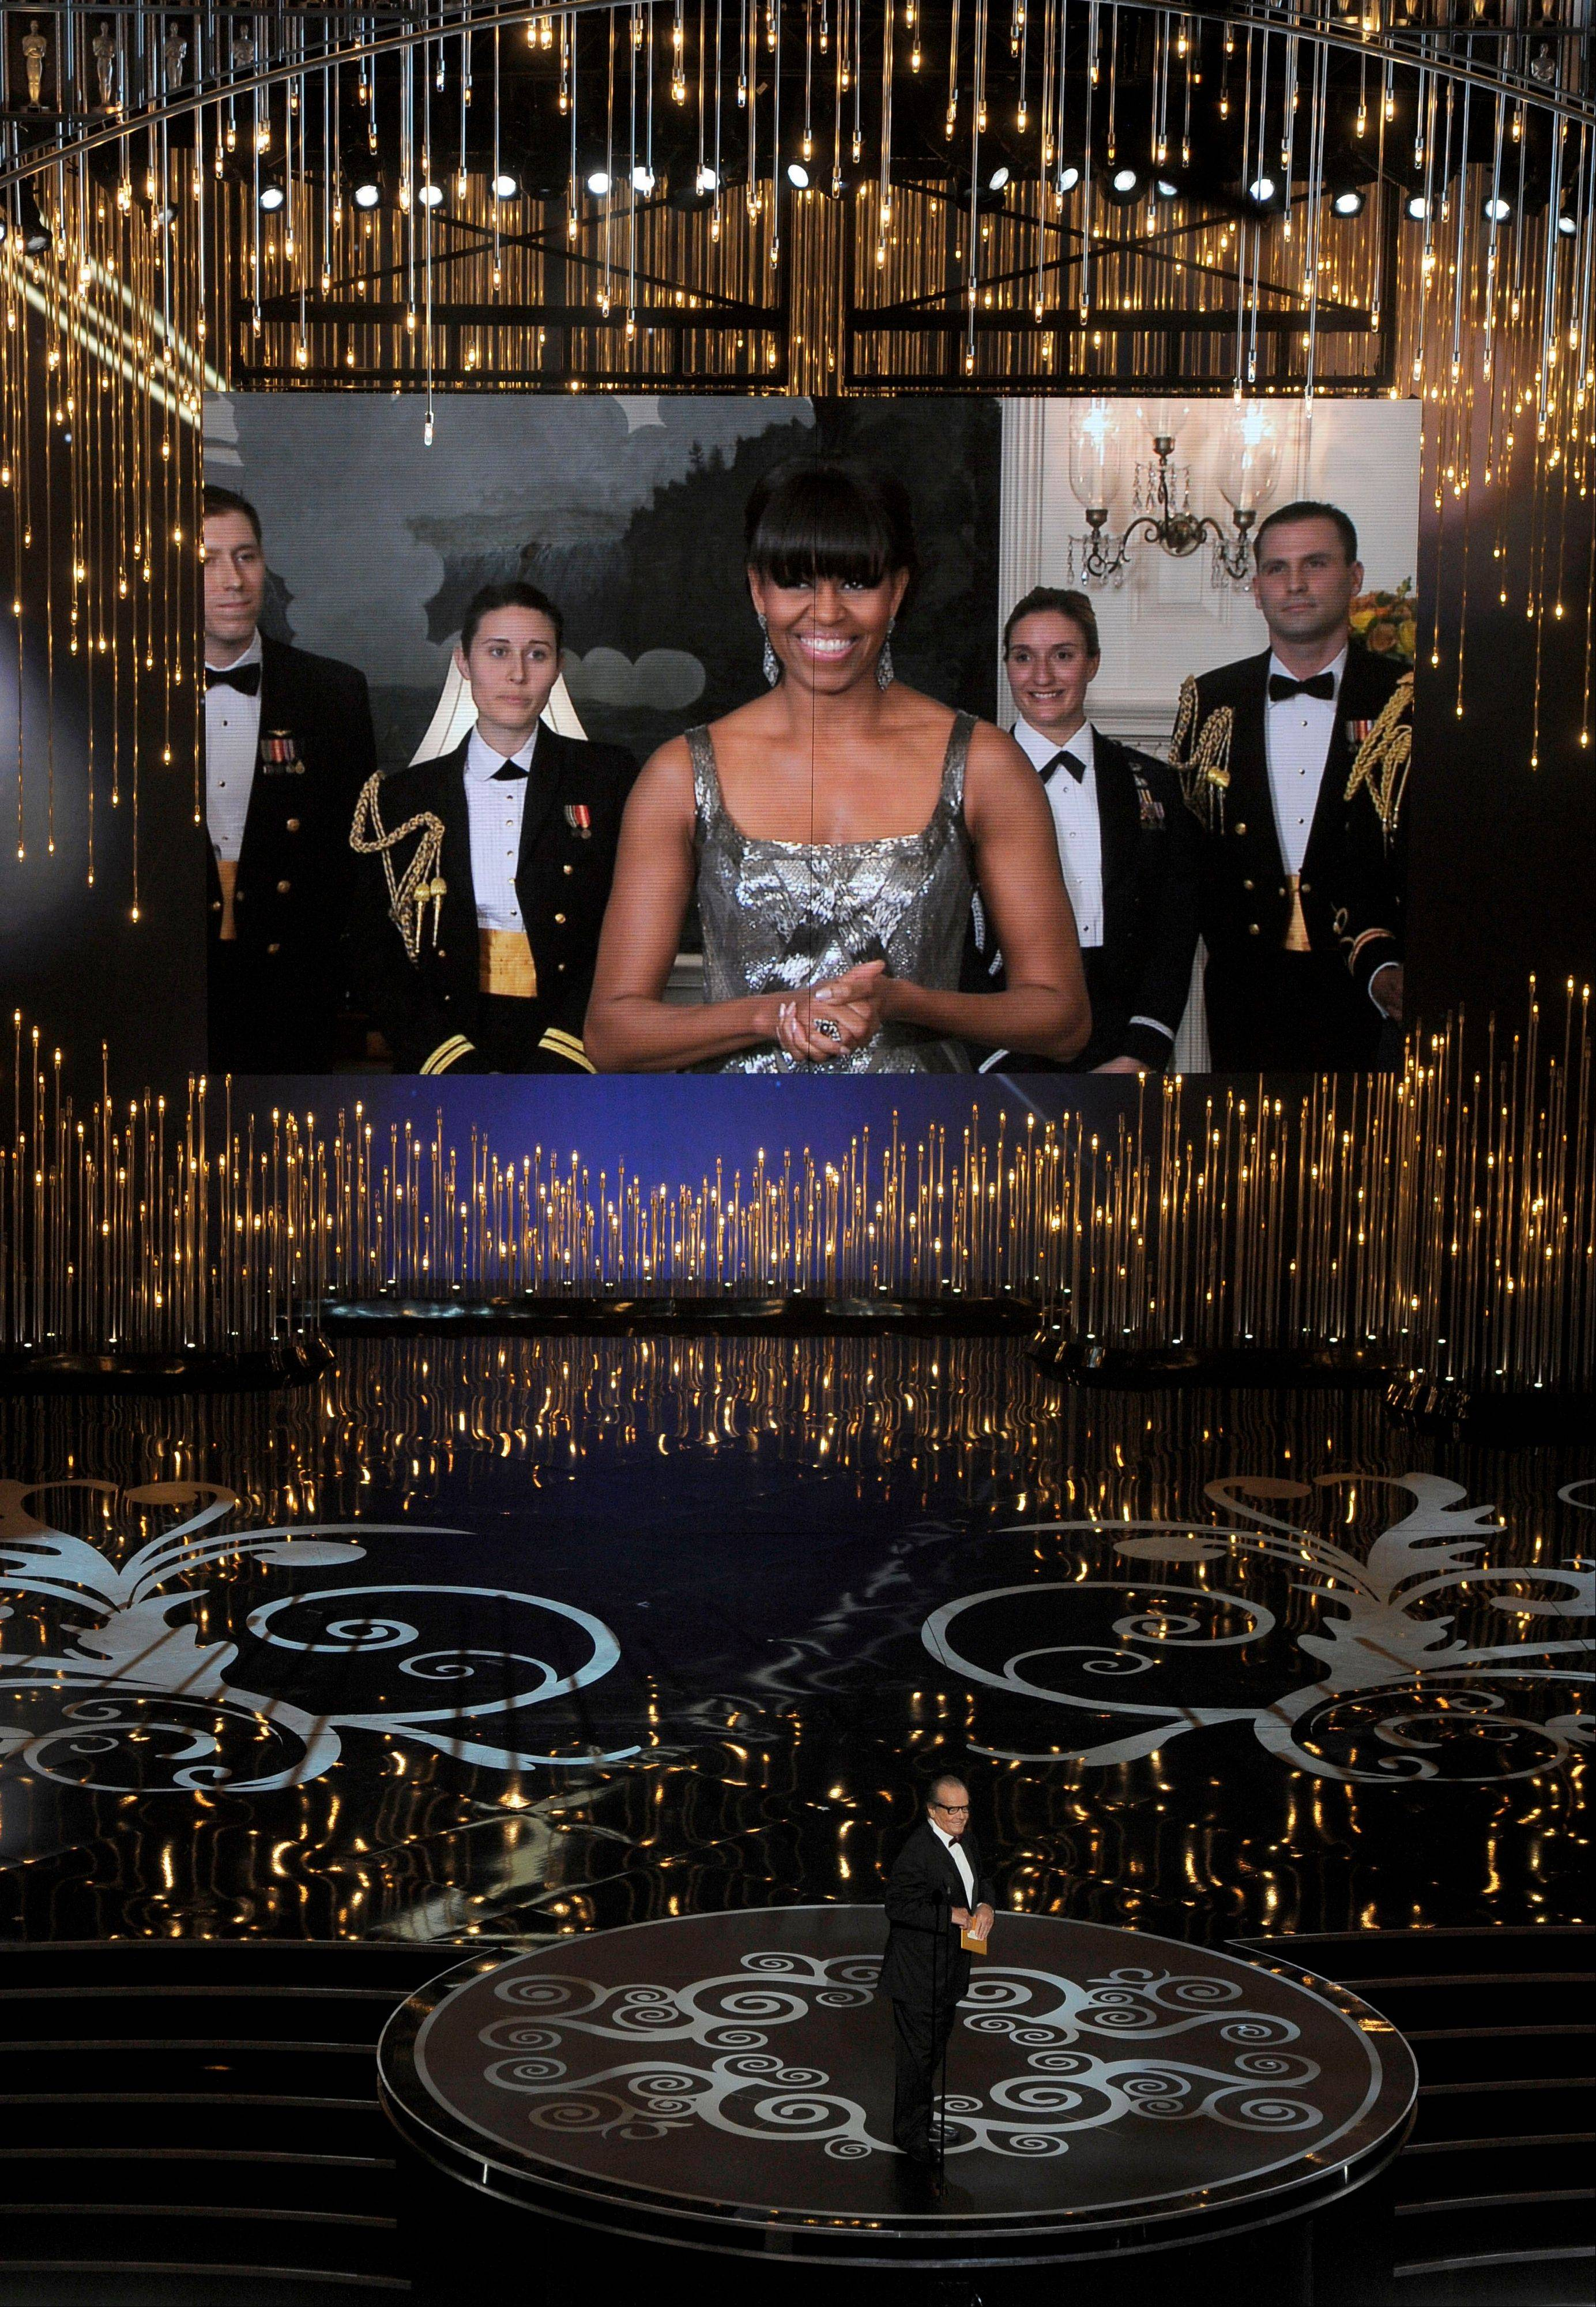 First lady Michelle Obama appeared on screen during the Oscars Sunday, while actor Jack Nicholson presented the award for best picture.